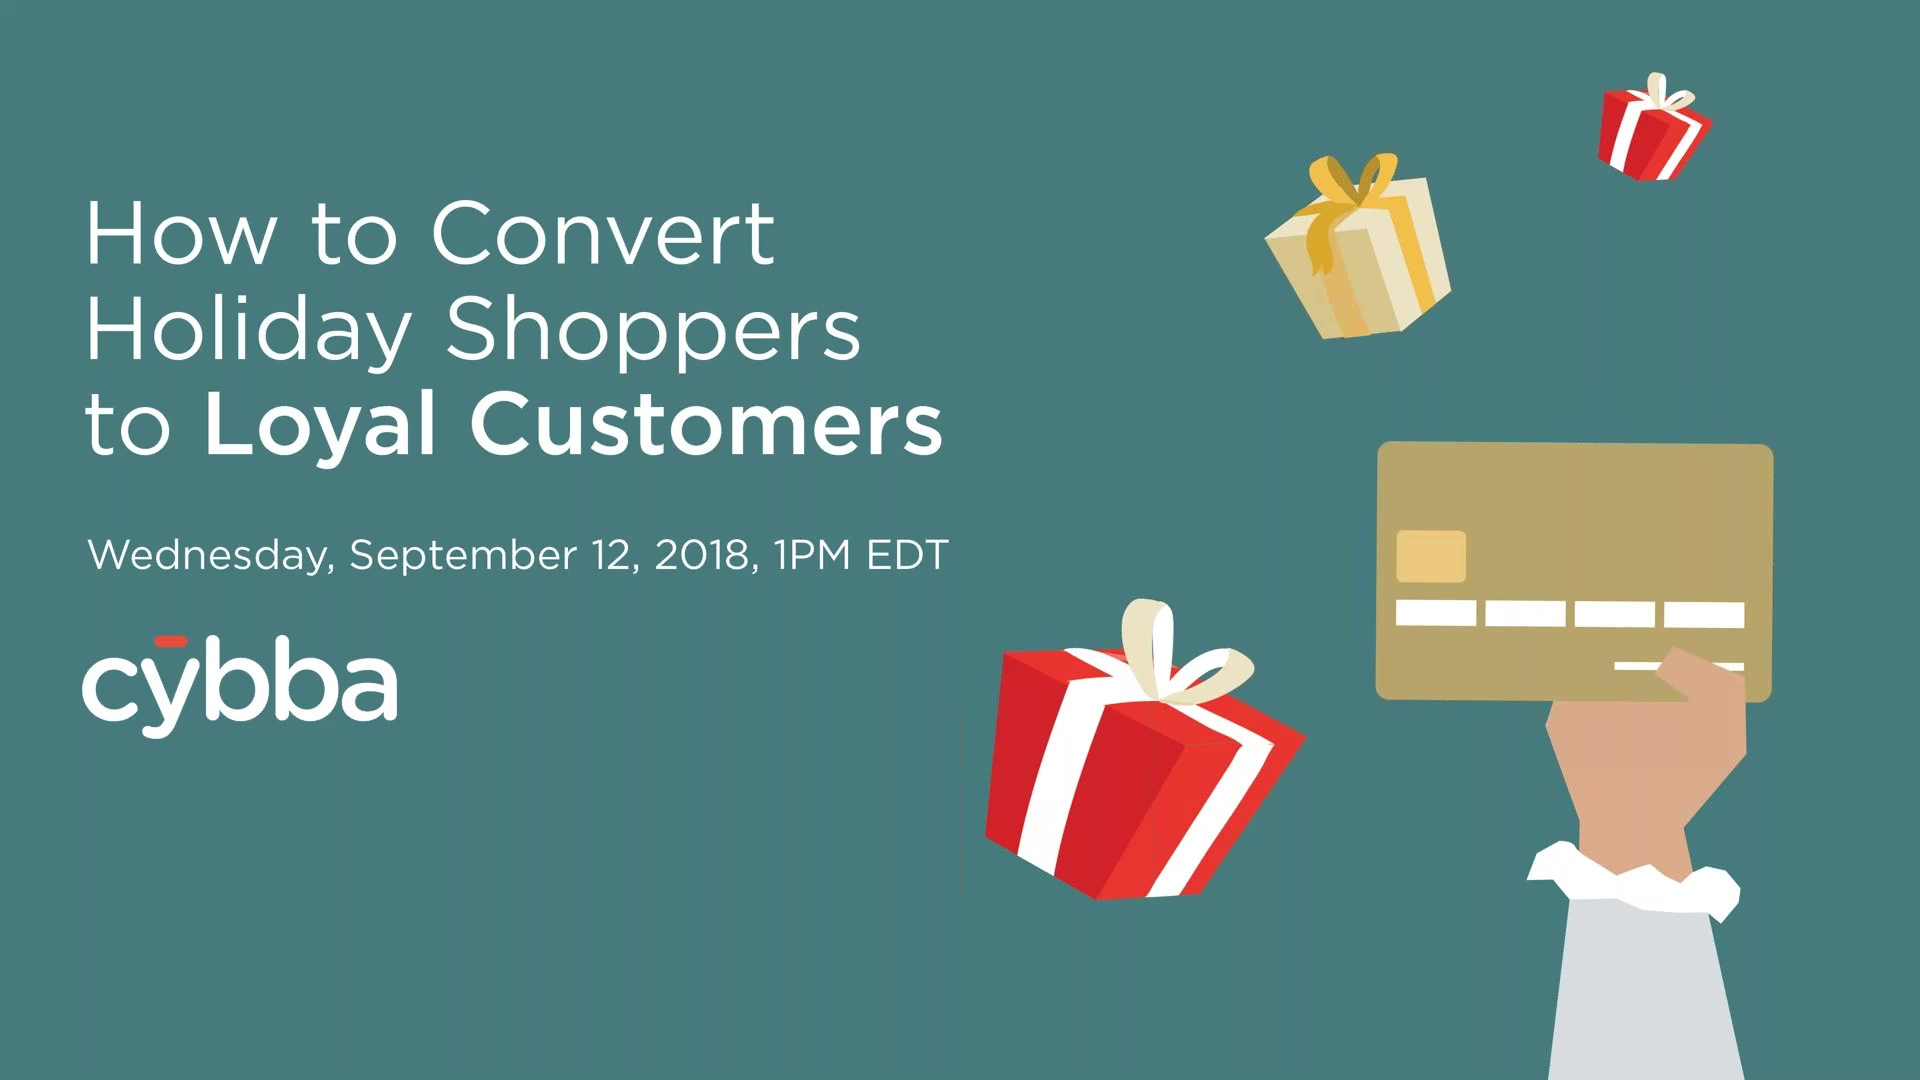 How to Convert Holiday Shoppers to Loyal Customers